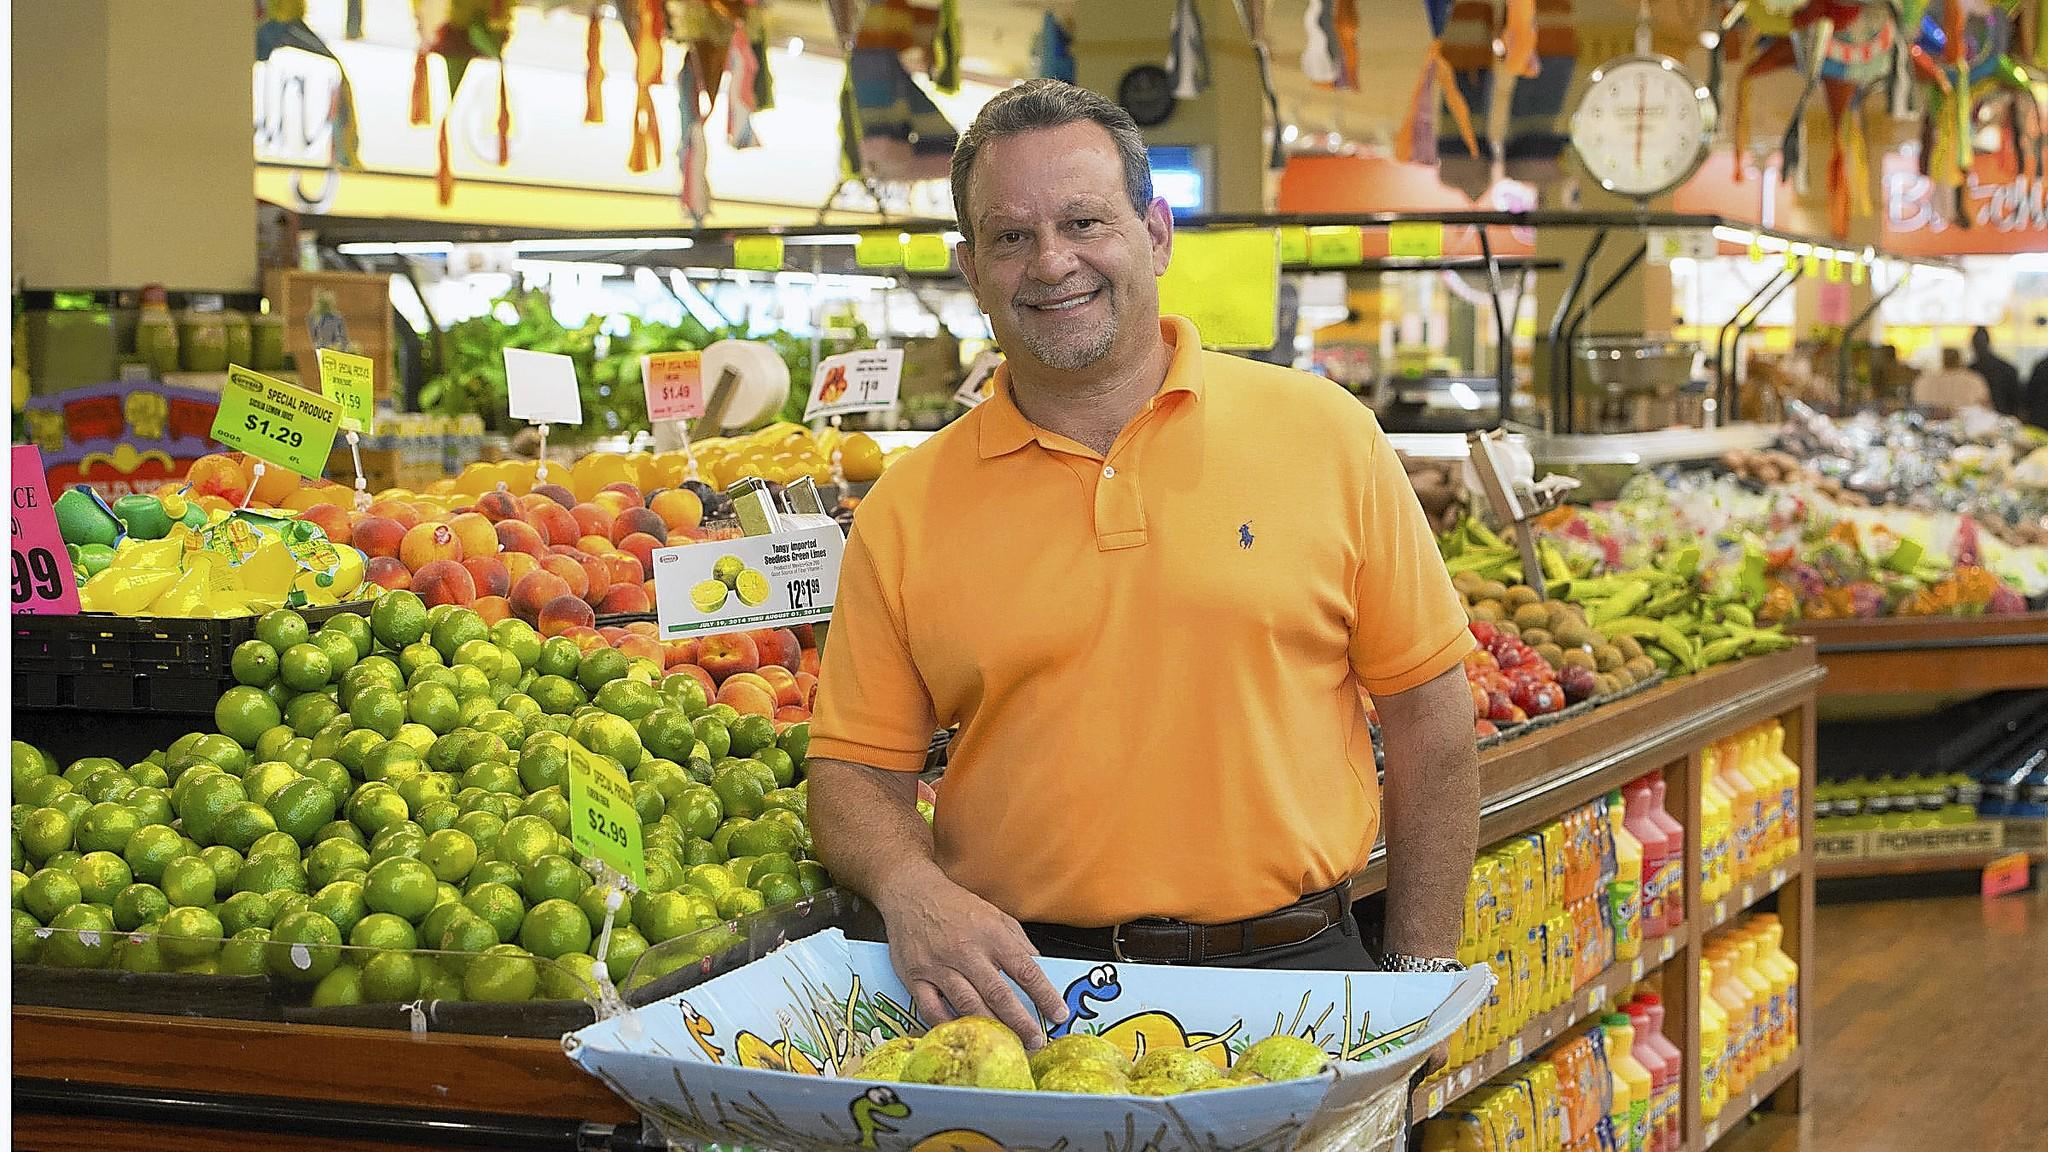 Supremo Food Market owner Eddie Trujillo is in the produce department of his company's Plainfield, N.J. Jersey grocery store. The New Jersey-based grocery chain is opening a store this fall in the long-vacant former Sears building on Allentown's North Seventh Street this fall.